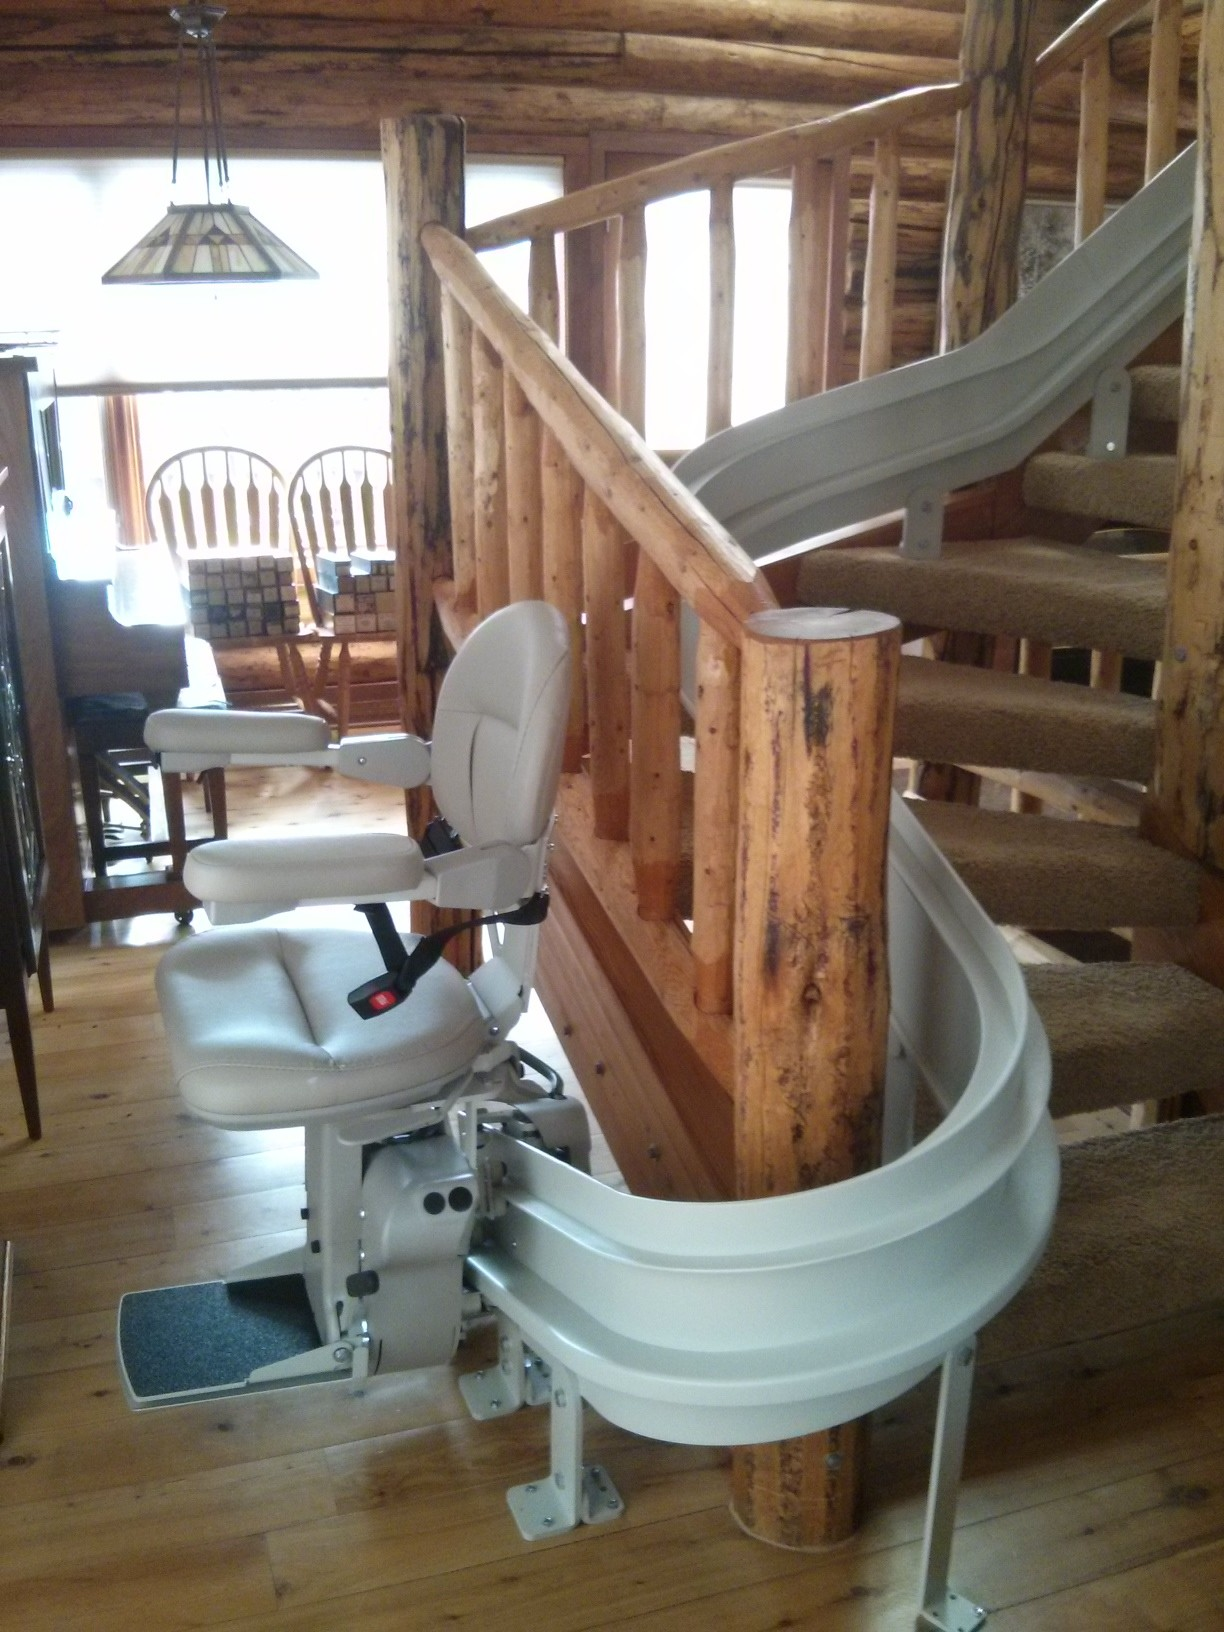 Chair Lift For Stairs Medicare Curved Stair Lift Design And Options Accessible Systems